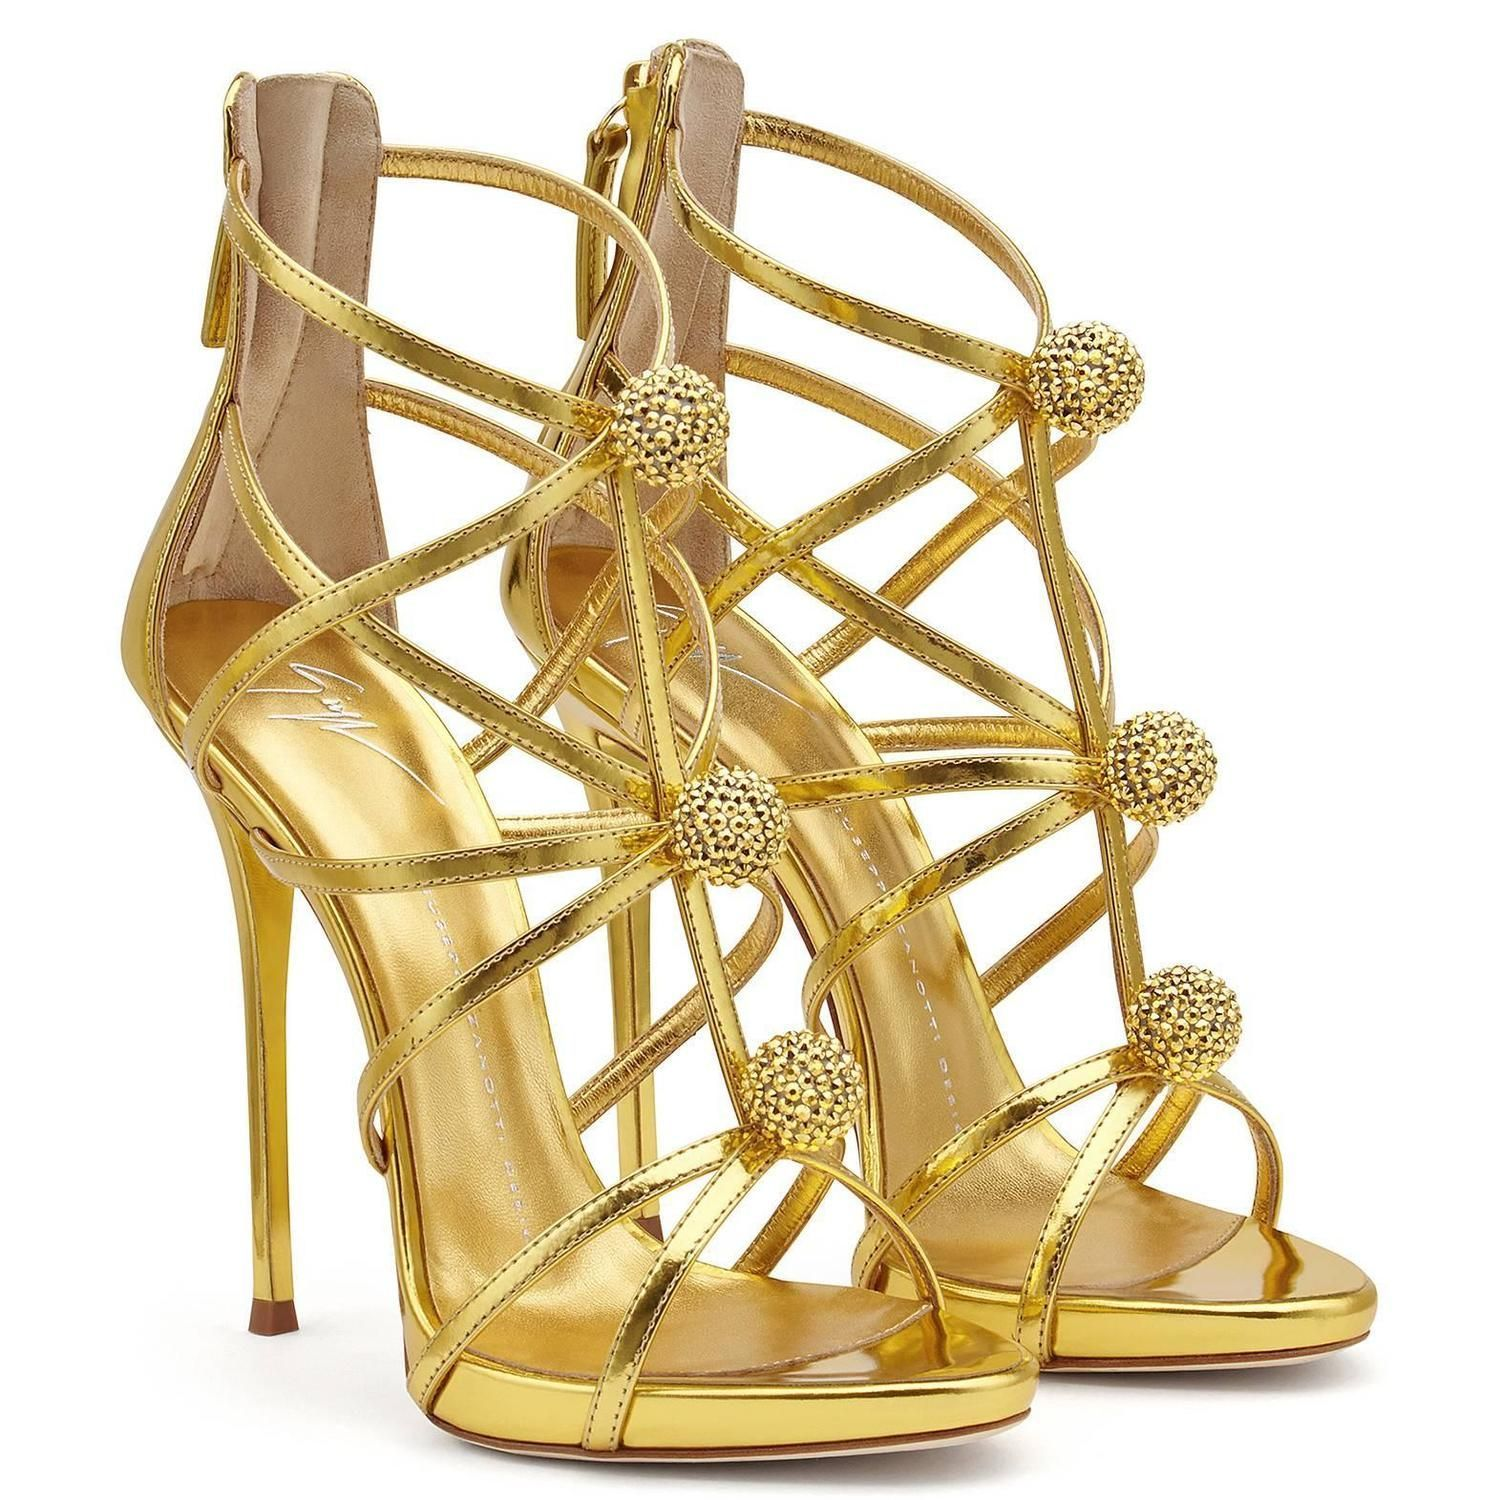 5a91cf45a5b02 Pin by Fashion For Womens High Heels on Giuseppe zanotti Heels in ...